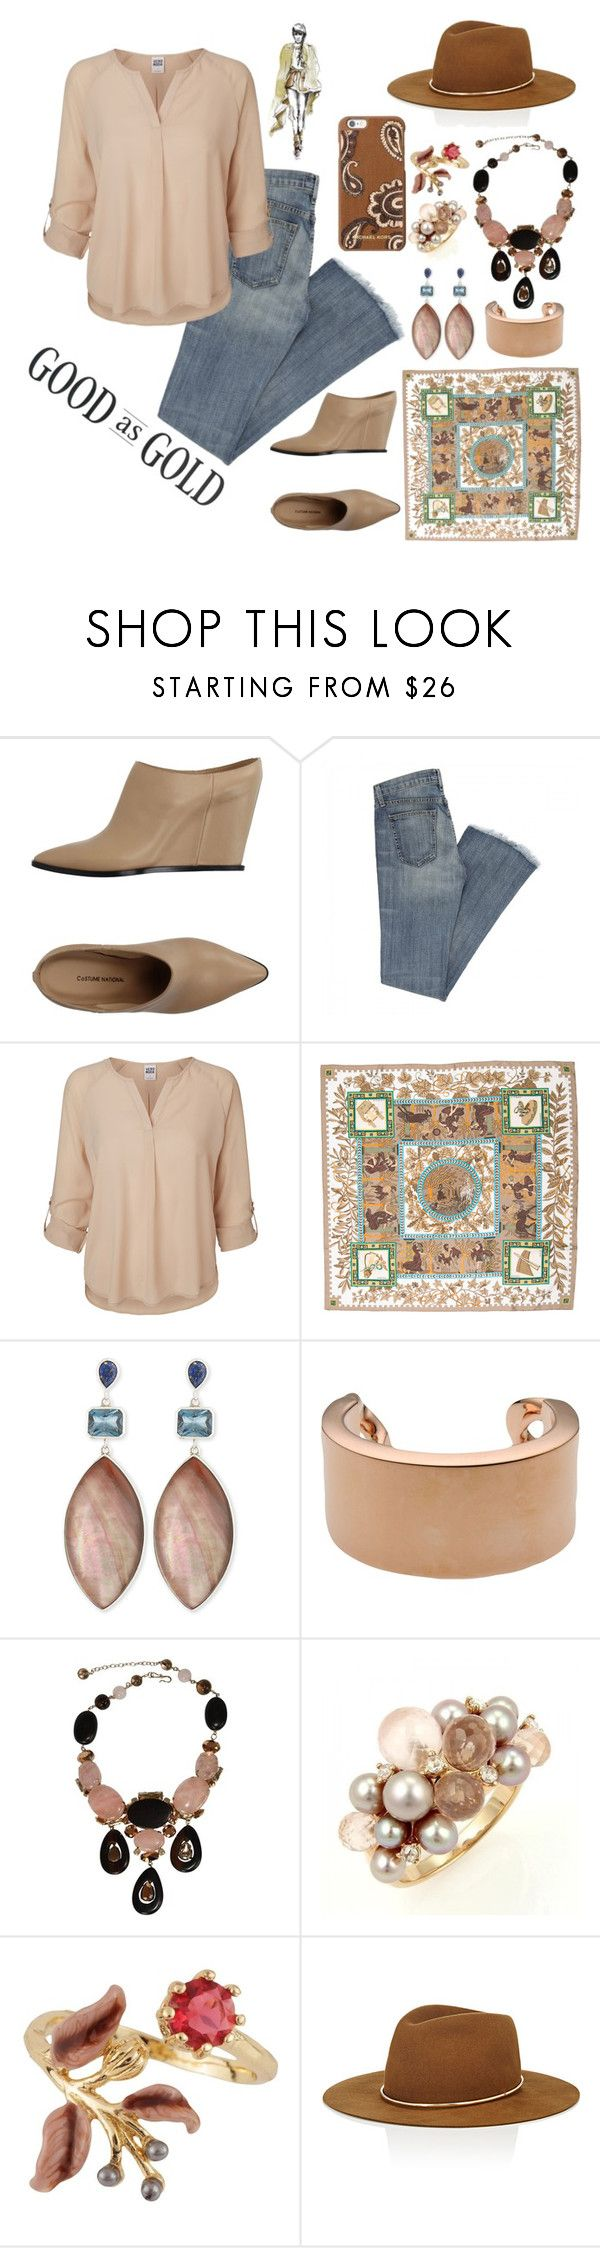 """Good as Gold"" by christinemusal ❤ liked on Polyvore featuring COSTUME NATIONAL, Vero Moda, Hermès, Stephen Dweck, Maison Margiela, Philippe Ferrandis, Mimí, Les Néréides, Janessa Leone and Michael Kors"